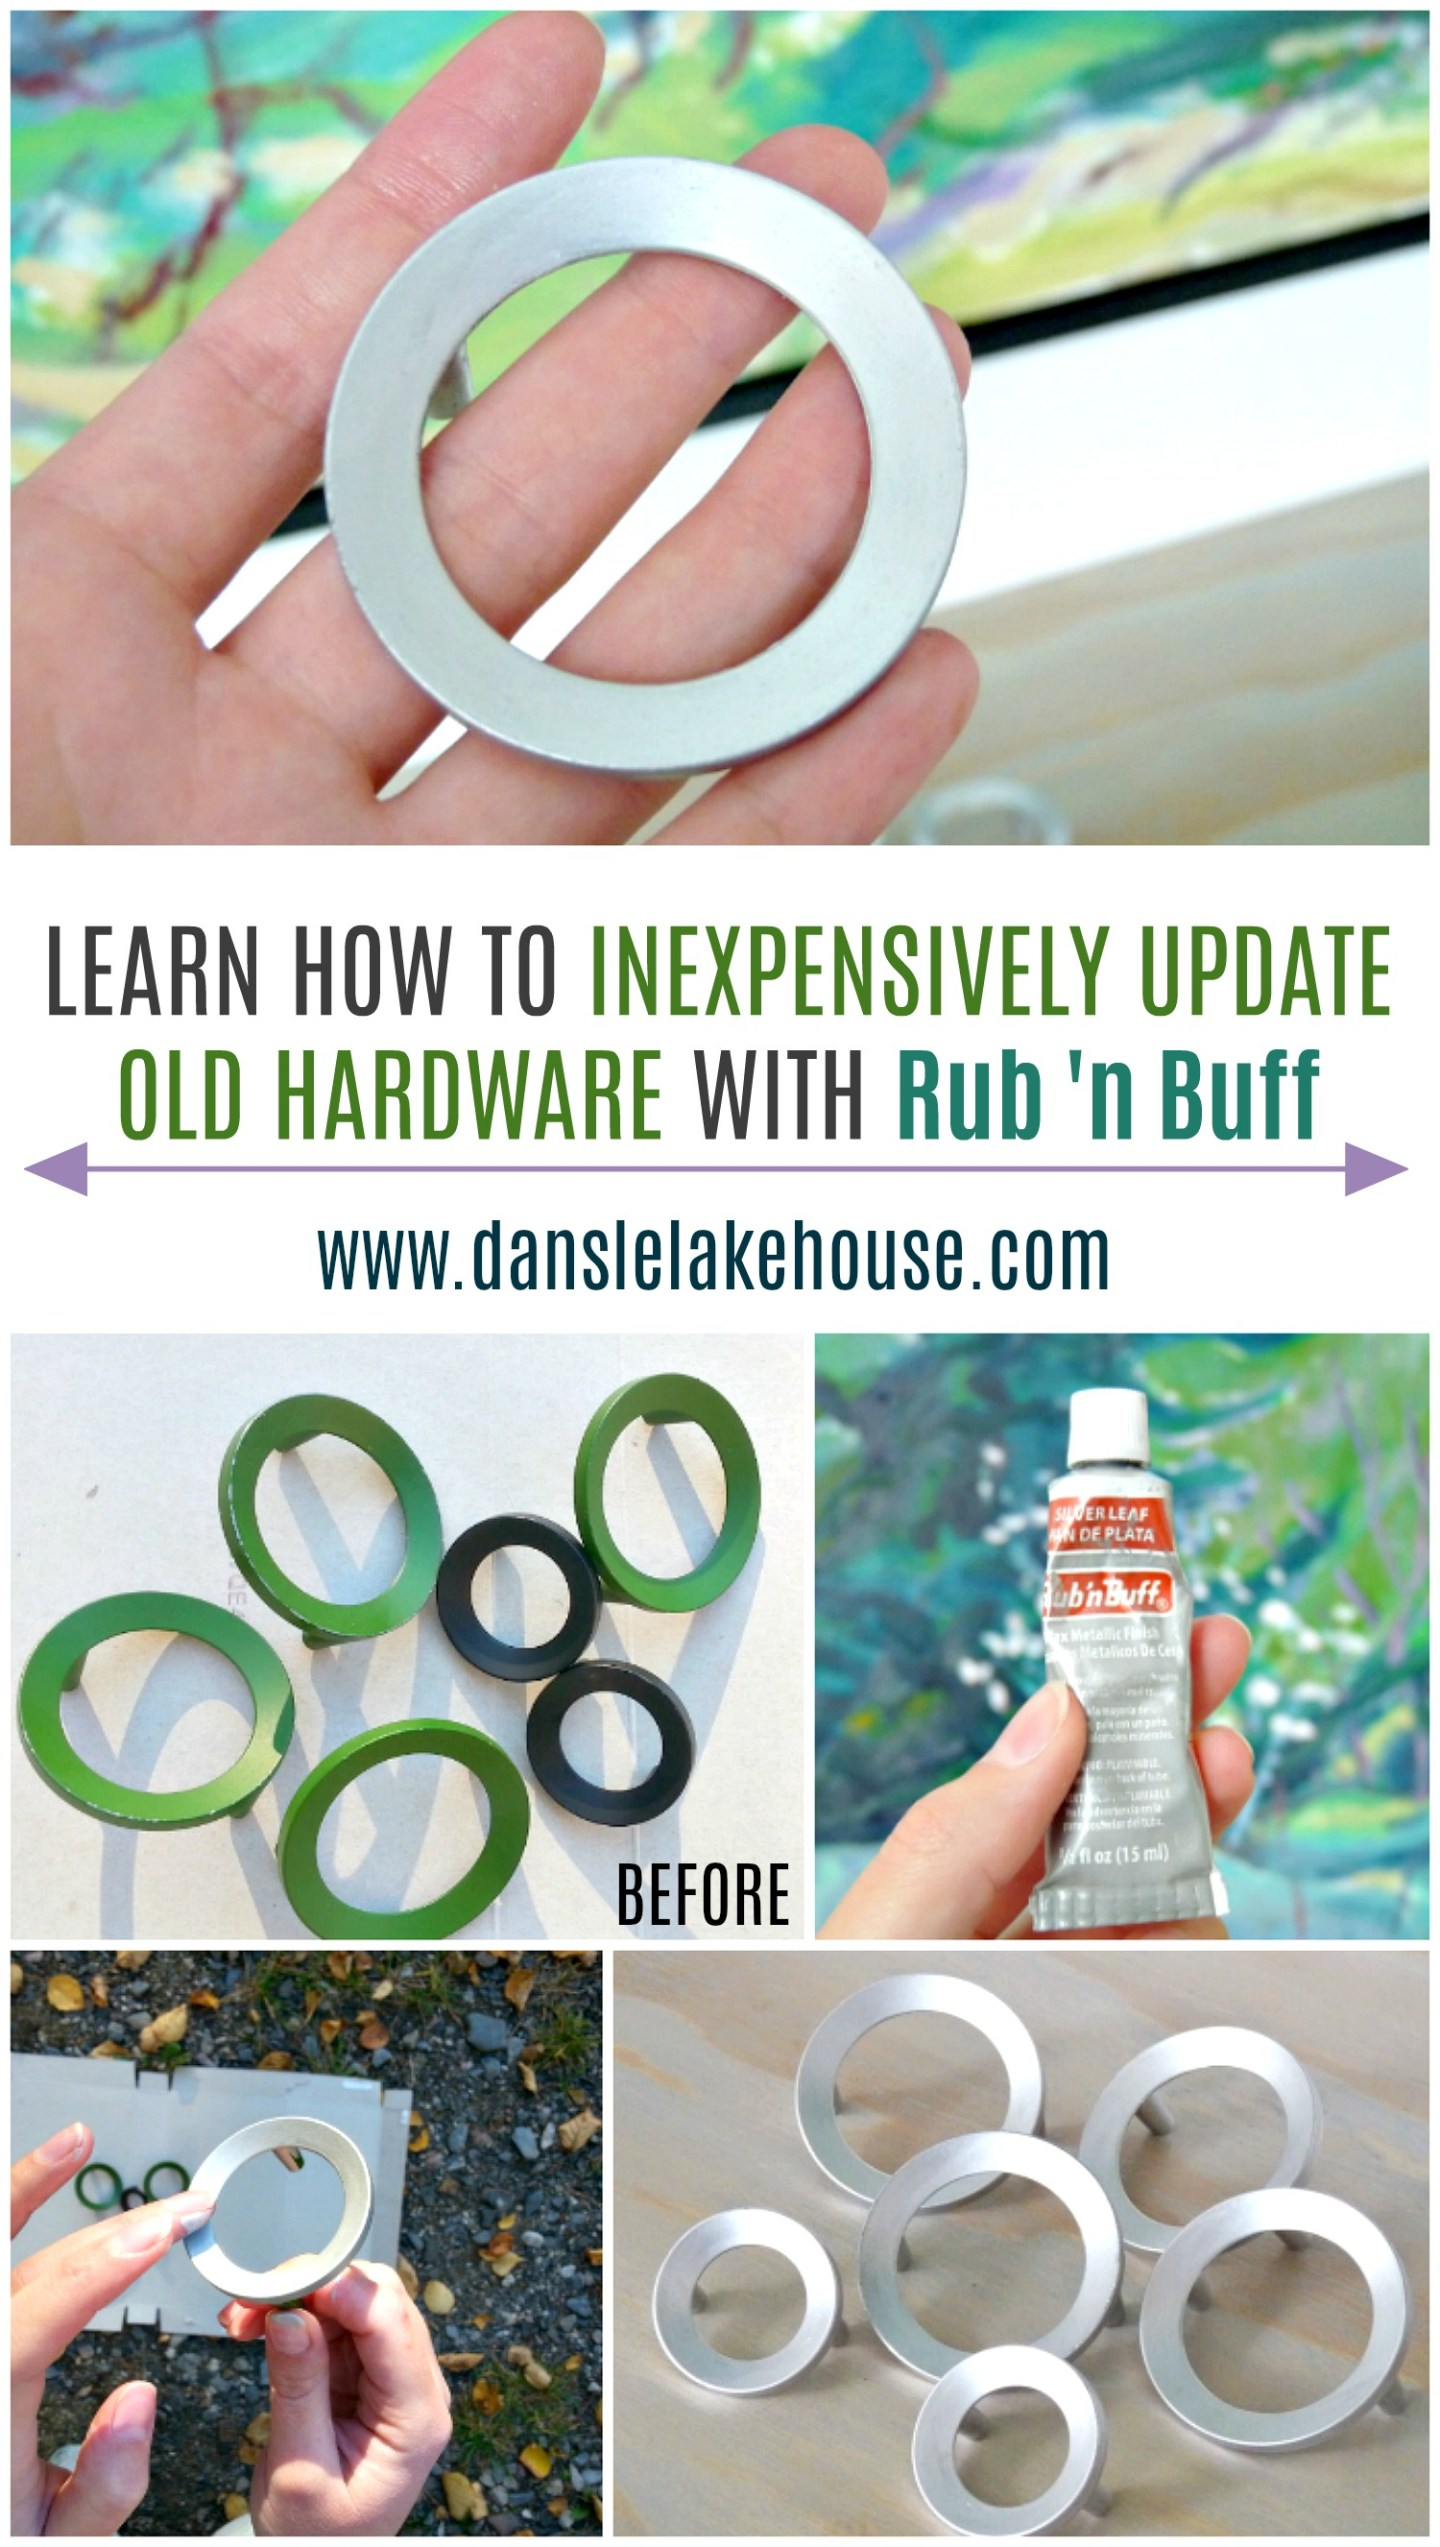 how to inexpensively update hardware using rub 'n buff. Transform the look of hardware! Budget-friendly update and great way to upcycle old hardware.